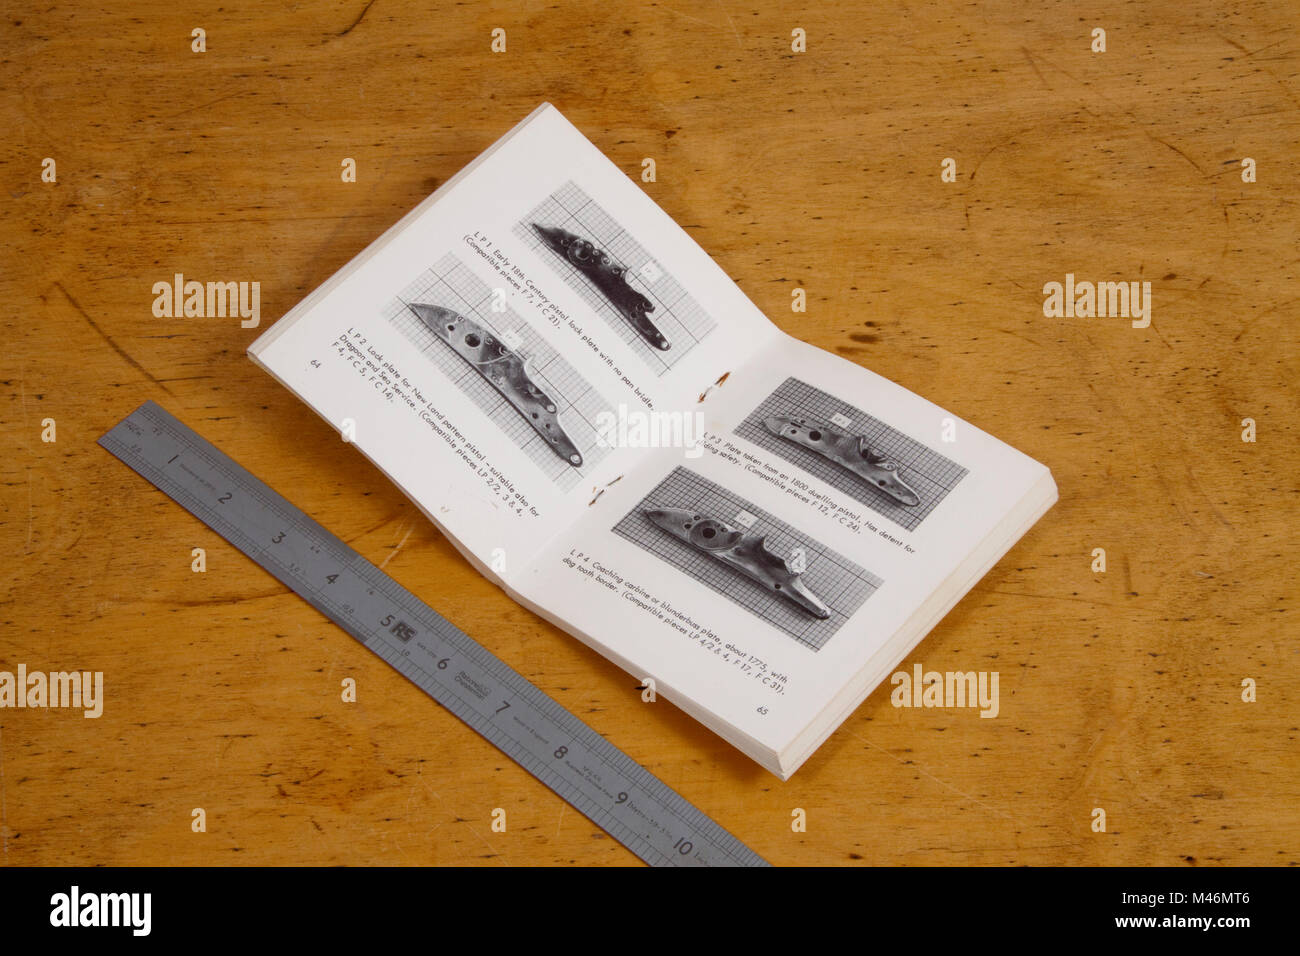 Illustrated booklet of antique gun parts - Stock Image